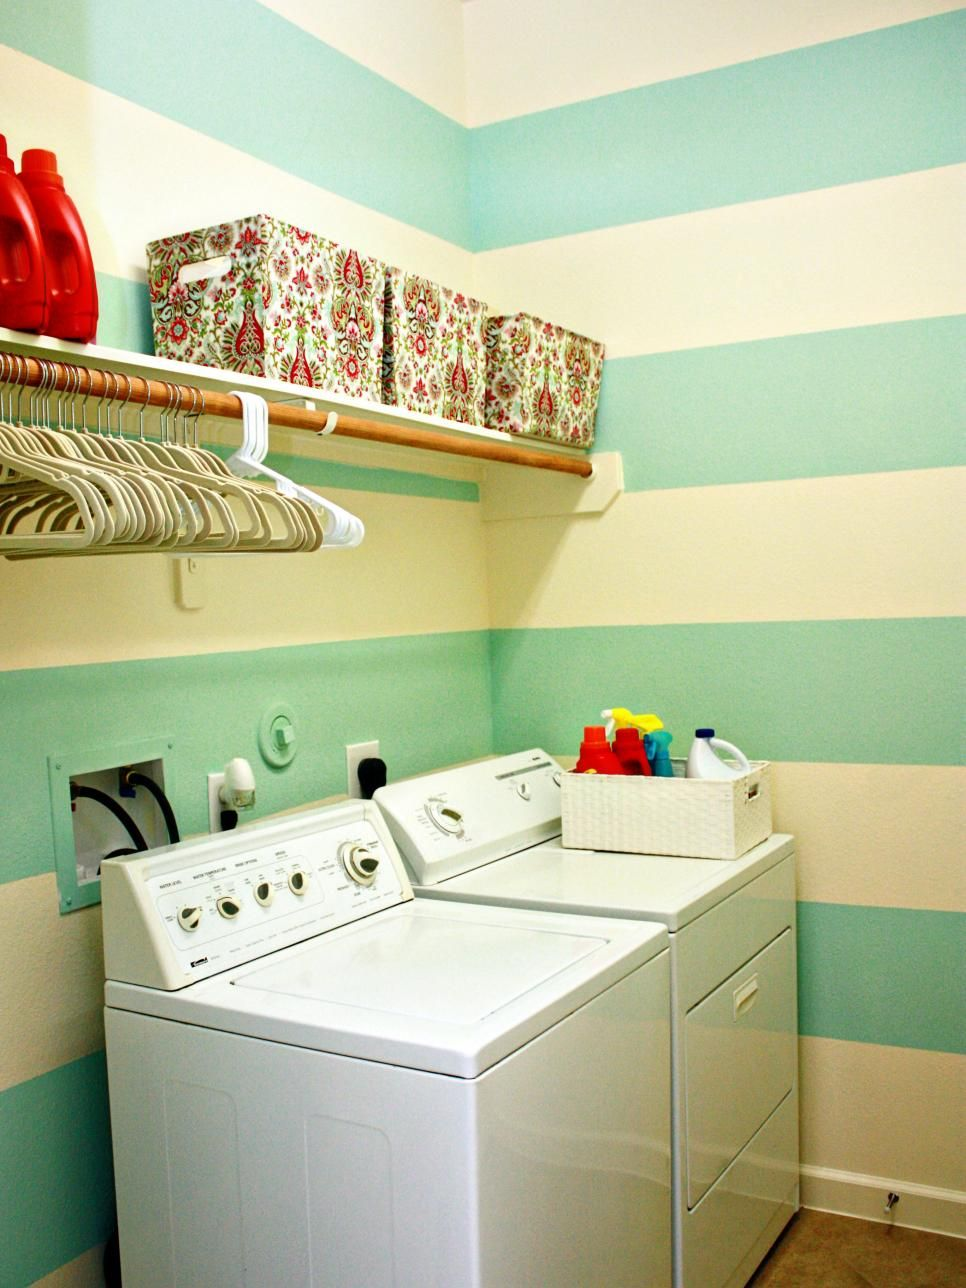 Decorating With Contrasting Colors | Pinterest | Laundry rooms ...